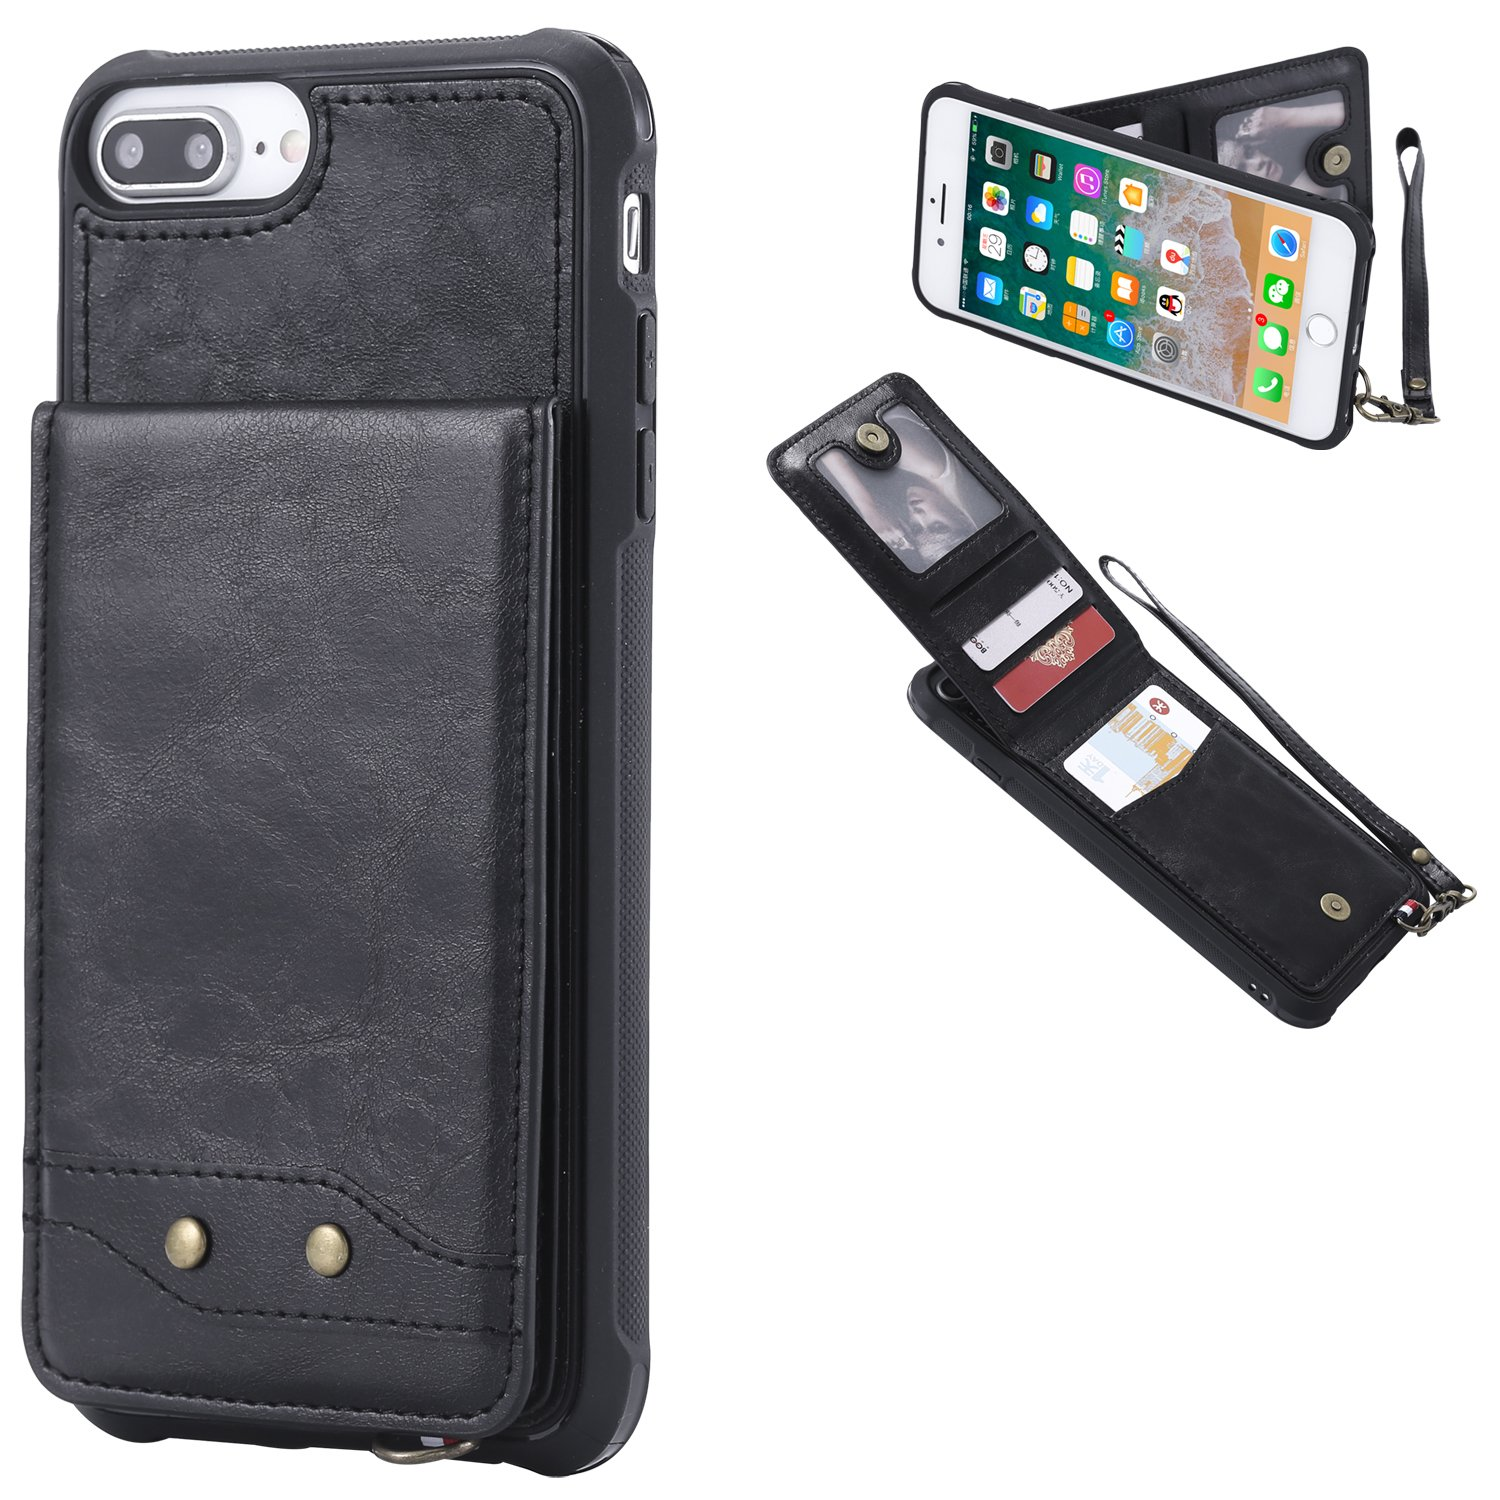 DAMONDY iPhone 7 Plus,iPhone 8 Plus, Luxury Wallet Purse Card Holders Design Cover Soft Shockproof Bumper Flip Leather Kickstand Magnetic Clasp With Wrist Strap Case for iPhone 8 Plus/7 Plus-black